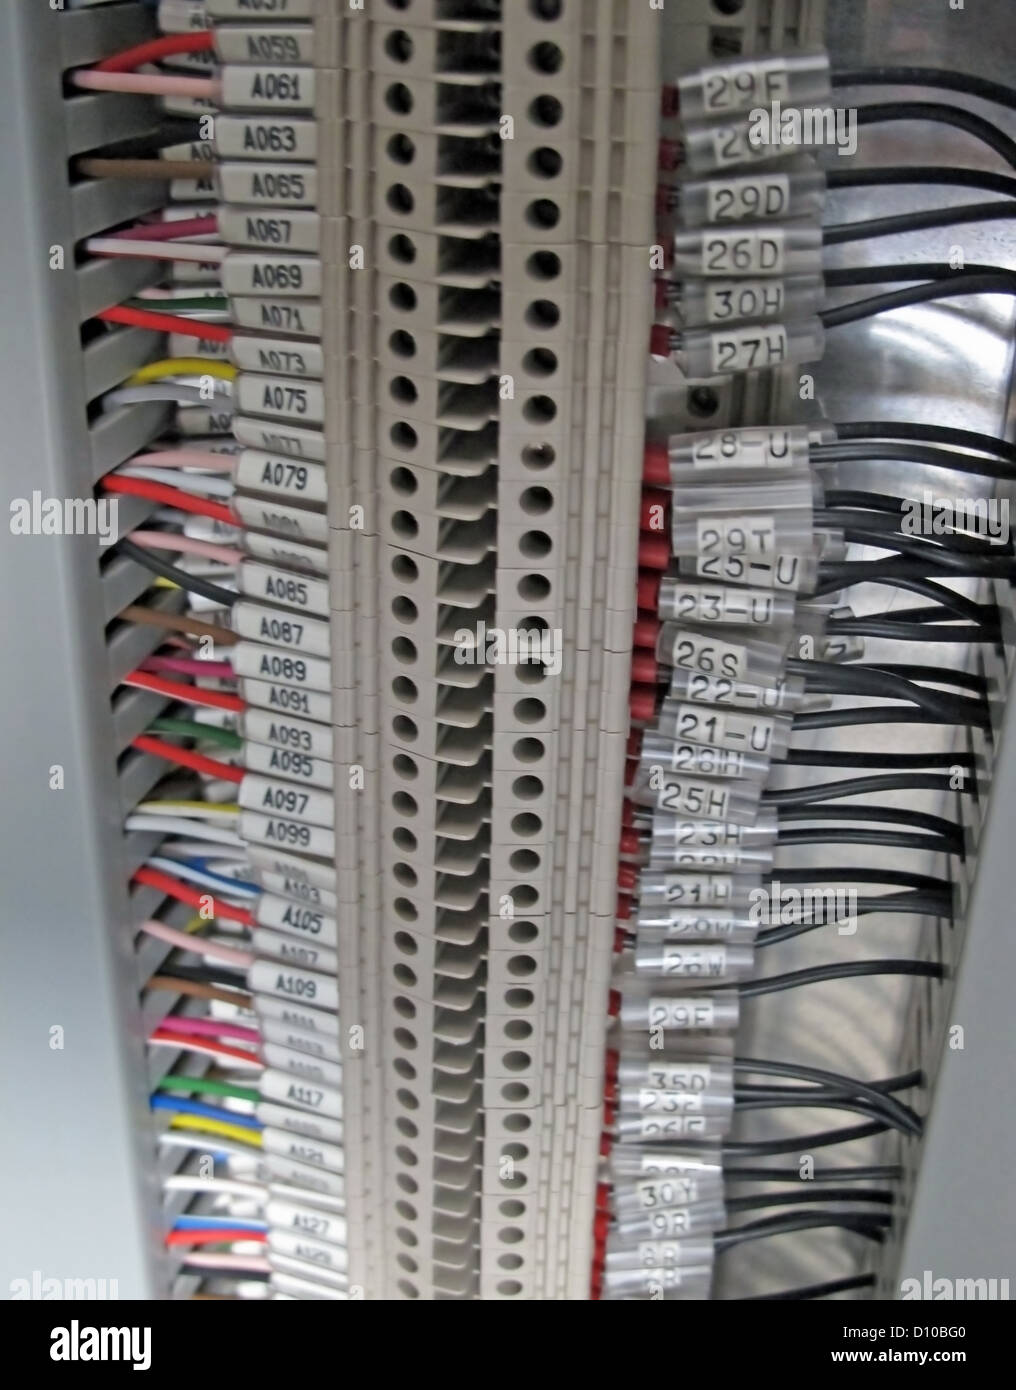 Terminal Block And Electrical Cables In An Electrical